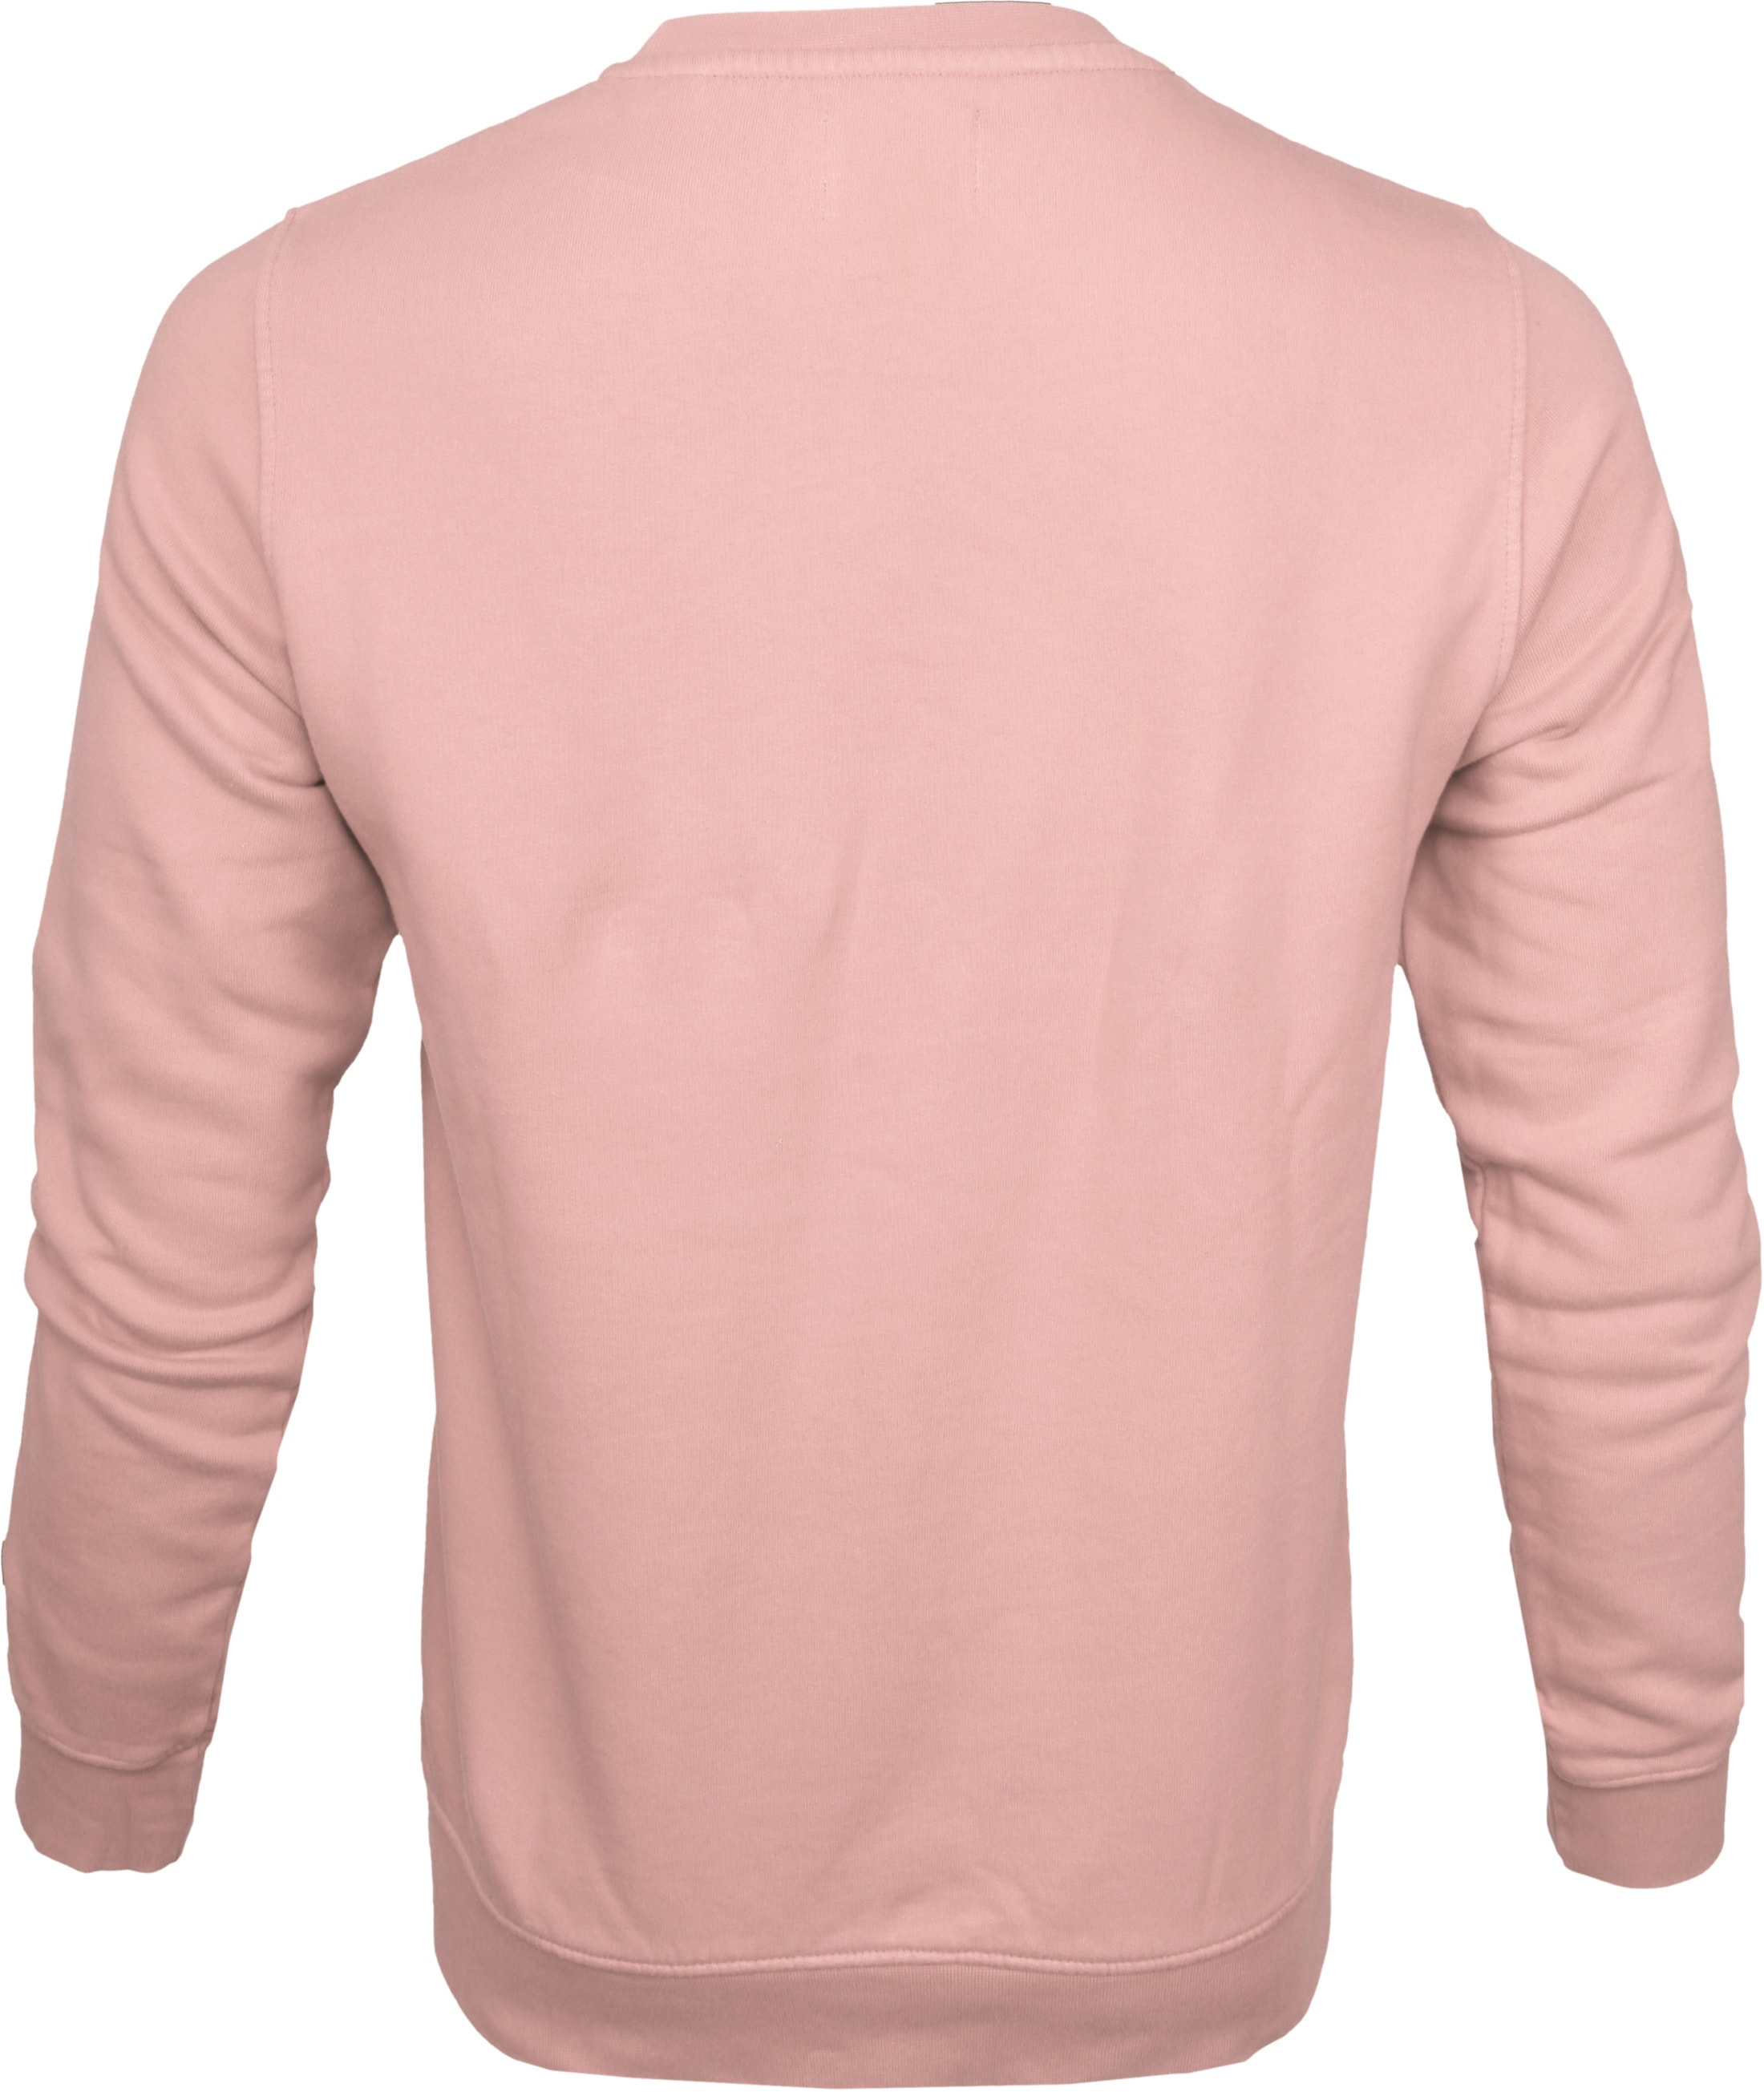 Colorful Standard Sweater Faded Pink foto 2